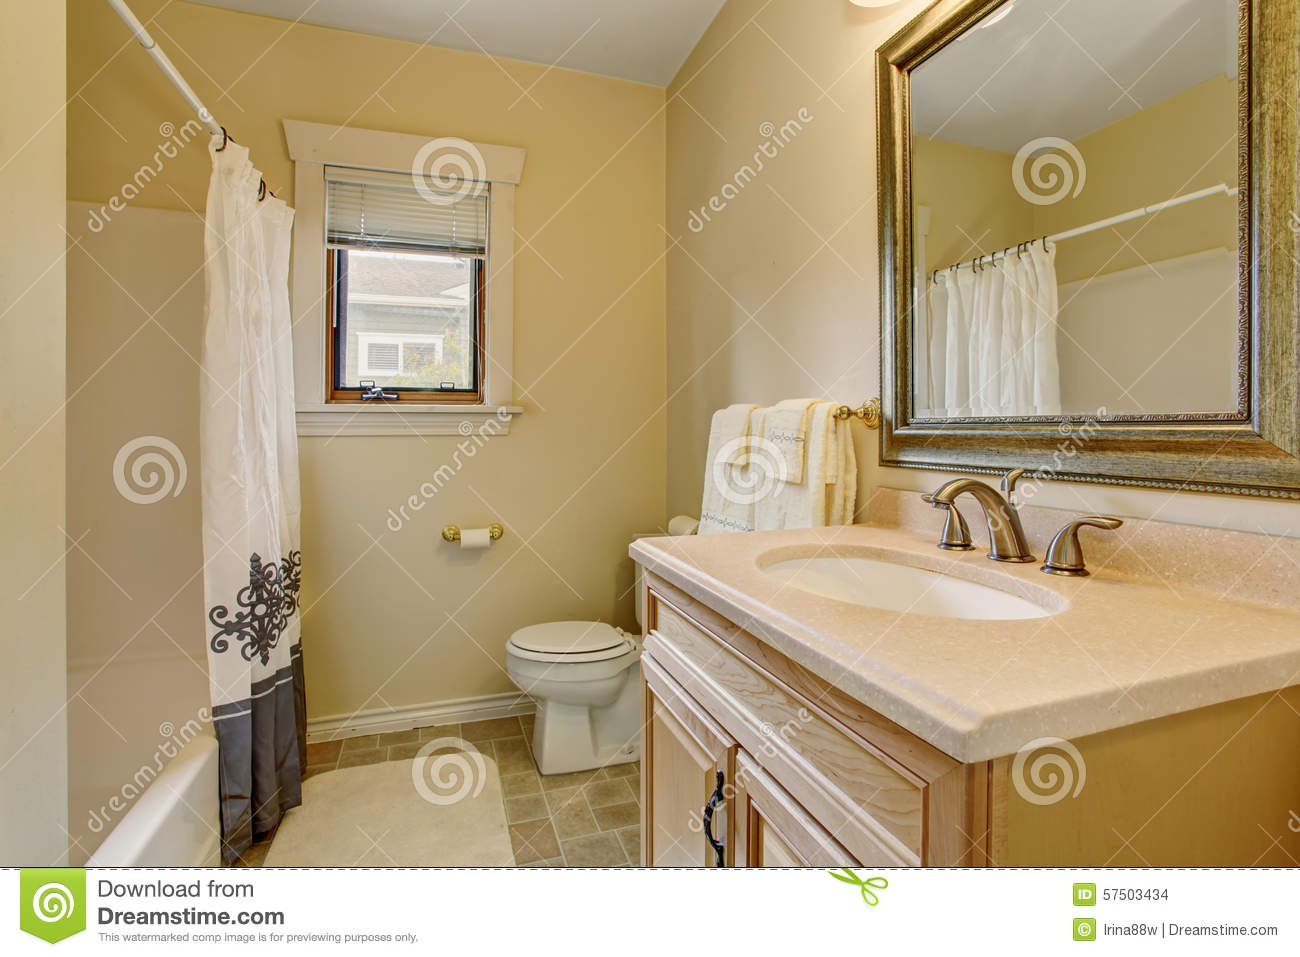 Modern Bathroom With Decorative Shower Curtain Royalty Free Stock Image